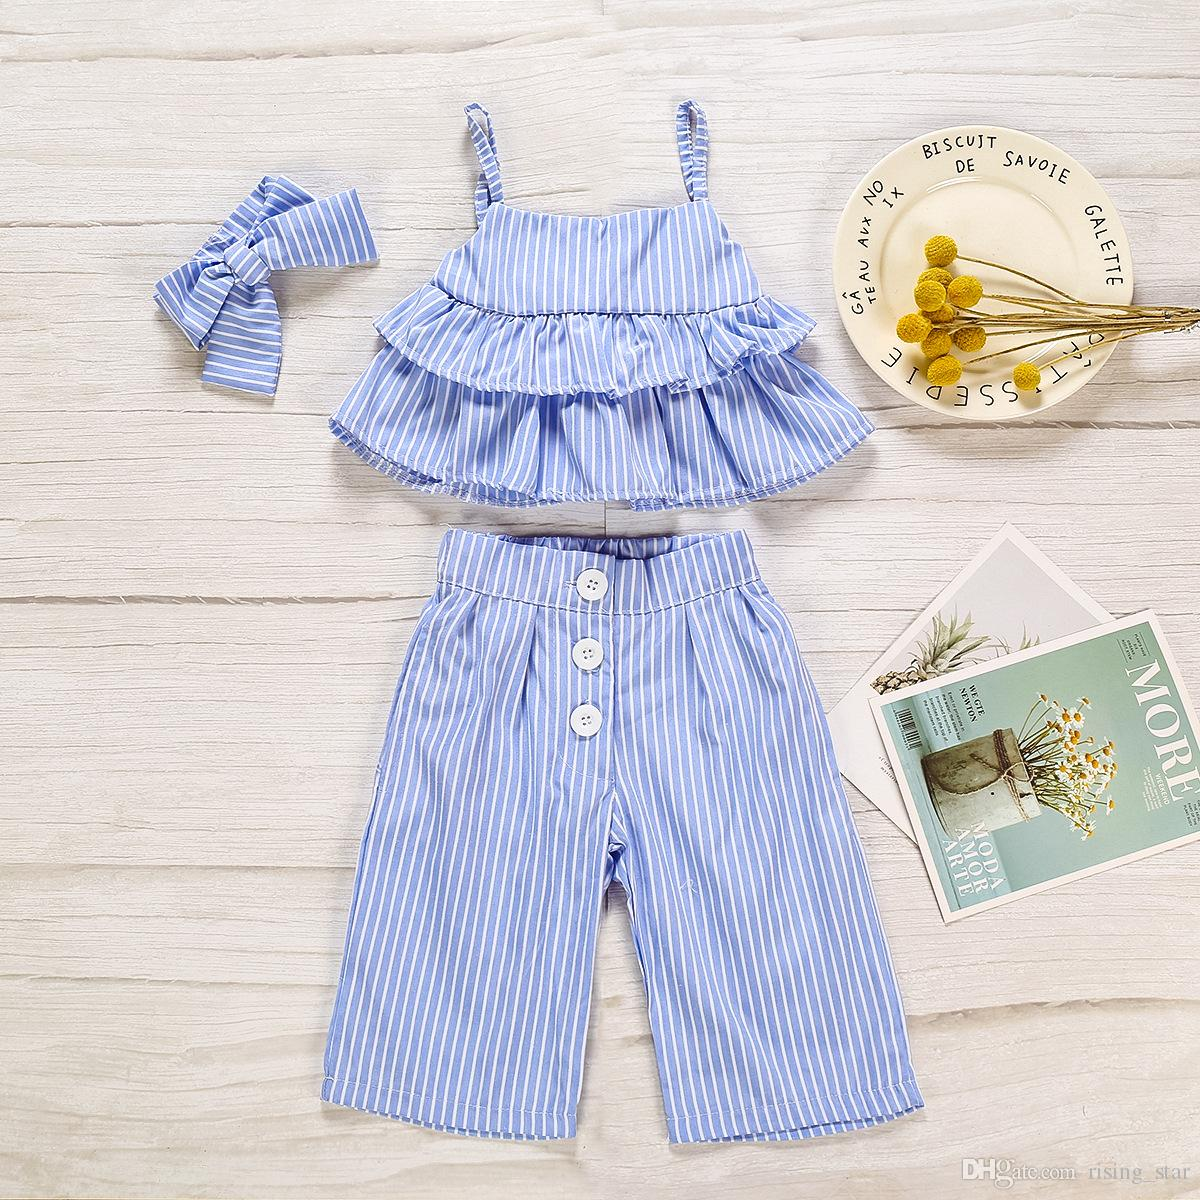 new Spring Summer Kids Clothes Baby Girls Clothing Sets Sling shirt+Trousers+Scarf 3-piece Sweet Girl Suit Free transportation